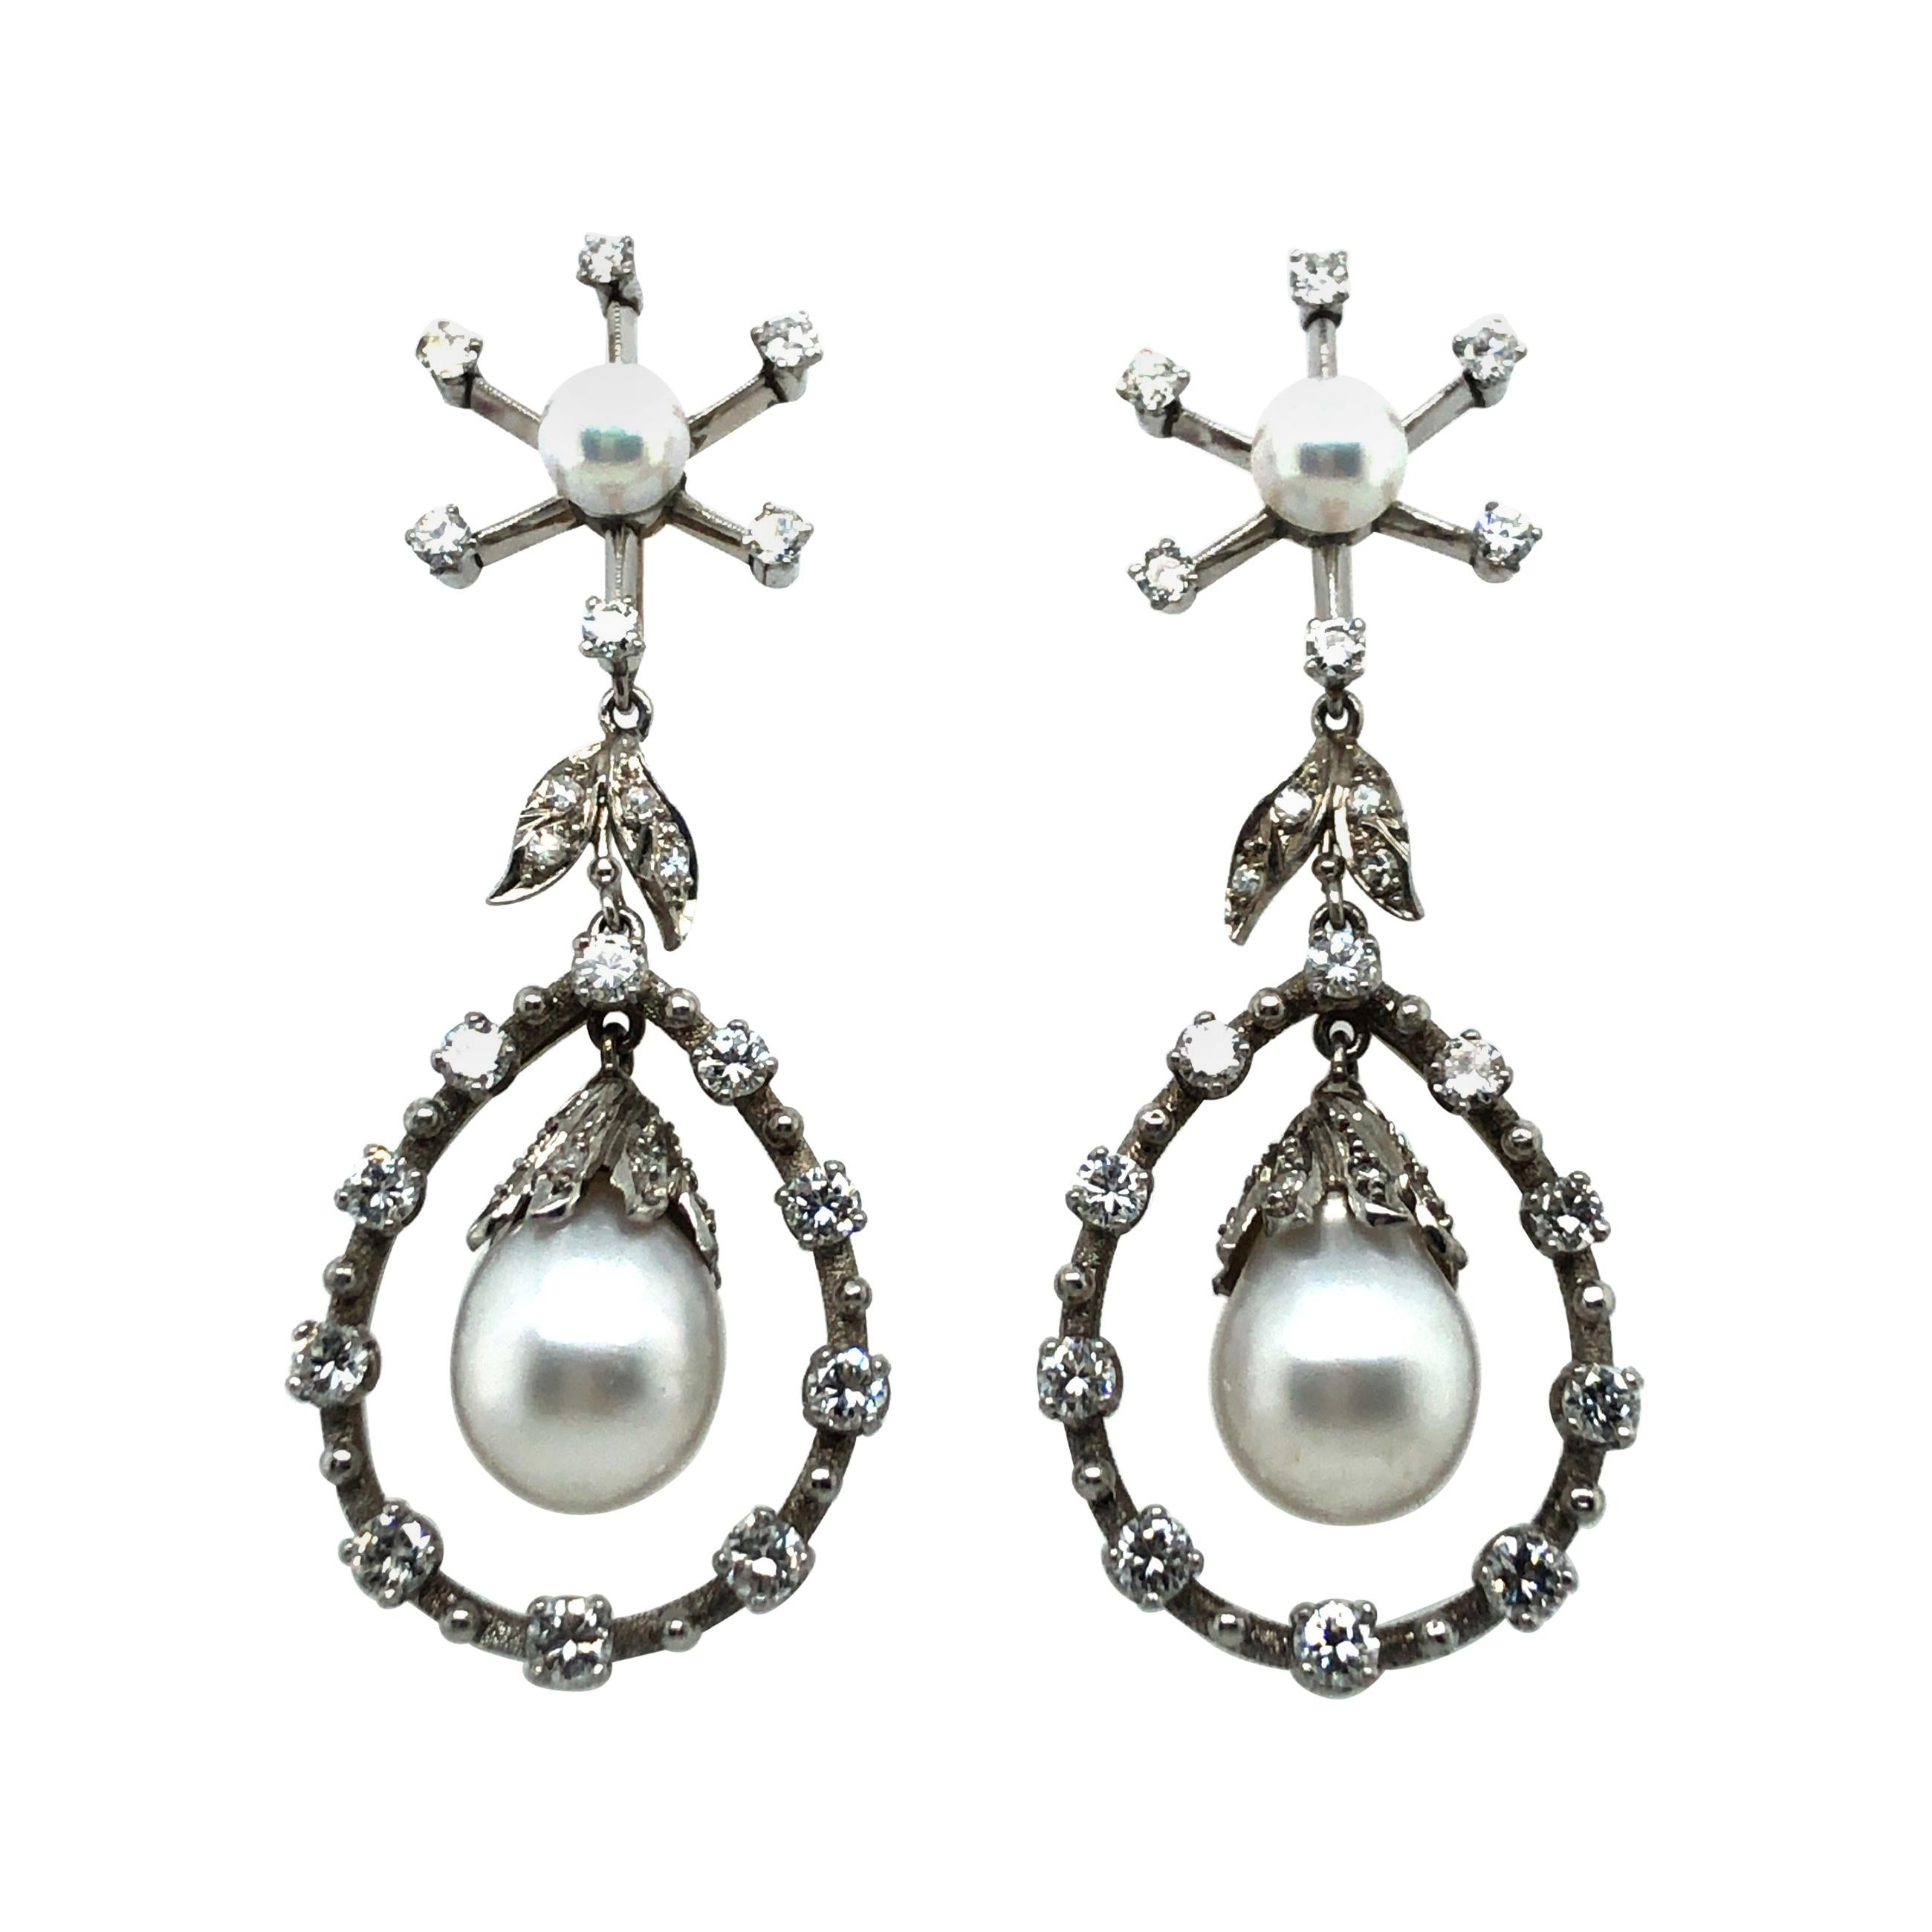 Chandelier Earrings with Diamonds and Akoya Pearls in 18k White Gold